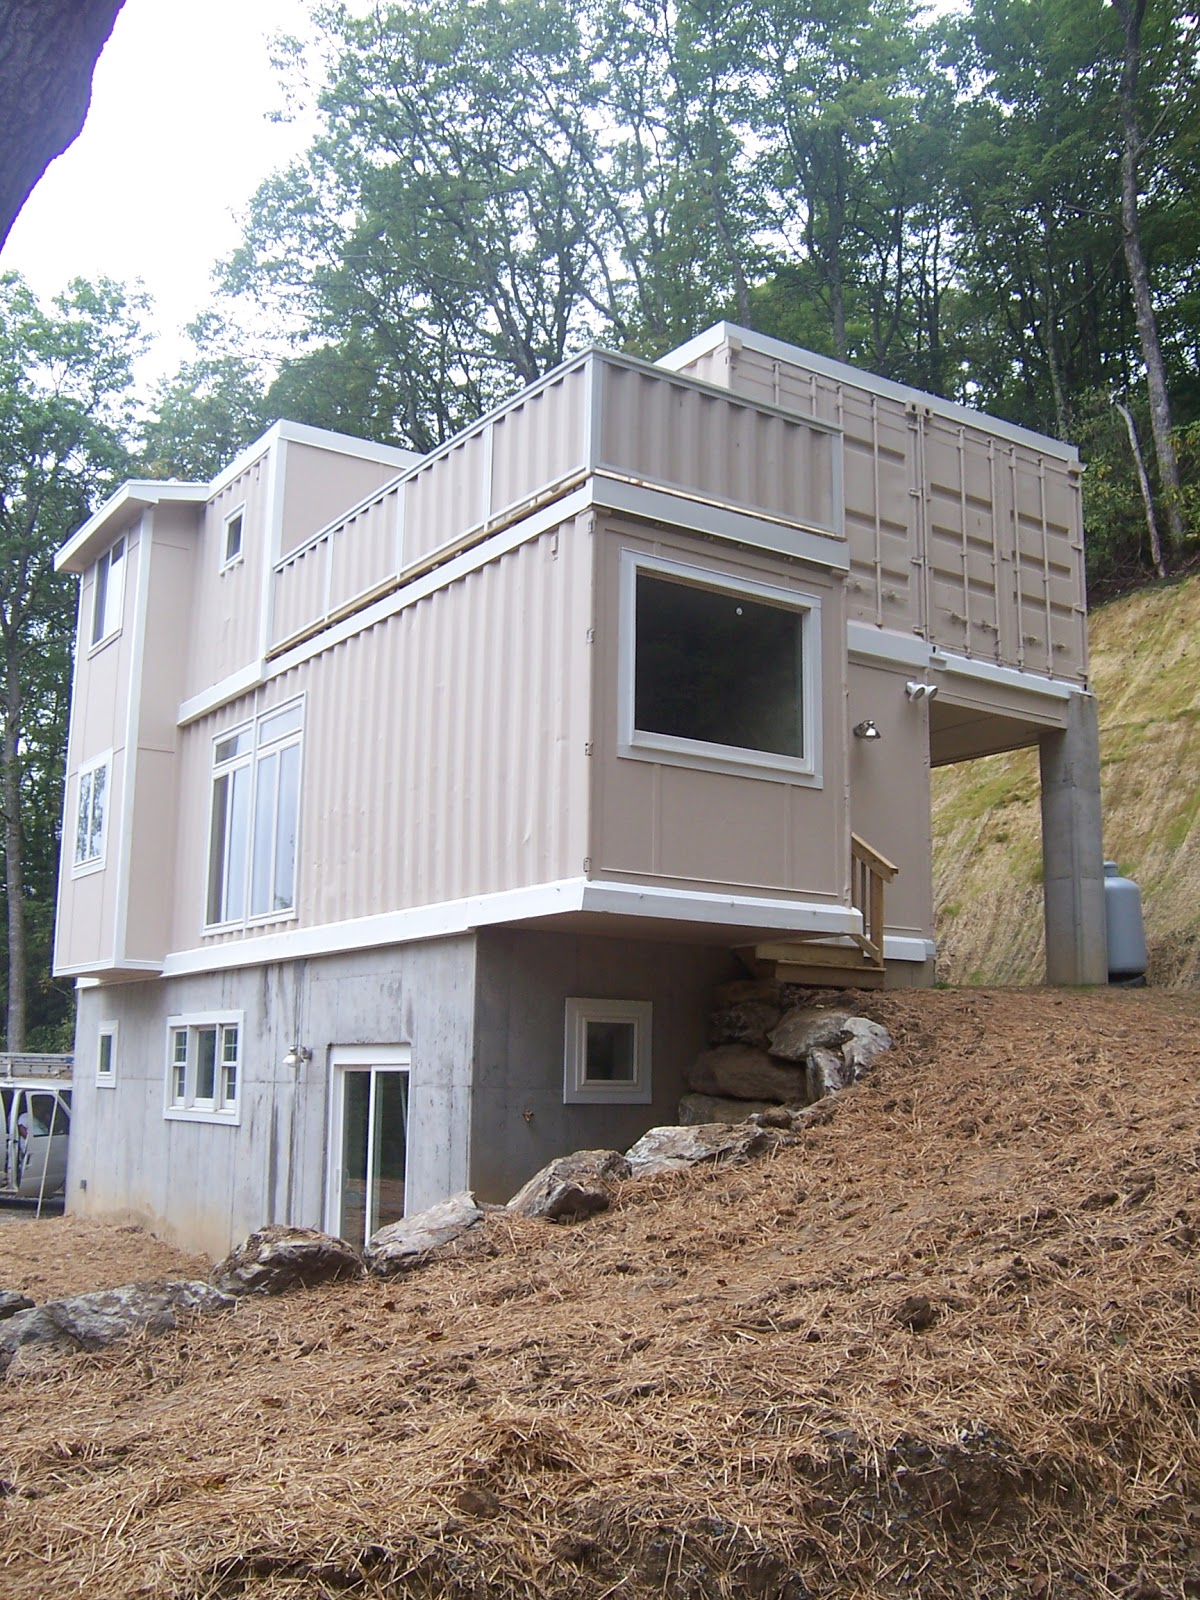 Shipping container homes high country green boxes for Container house plans for sale